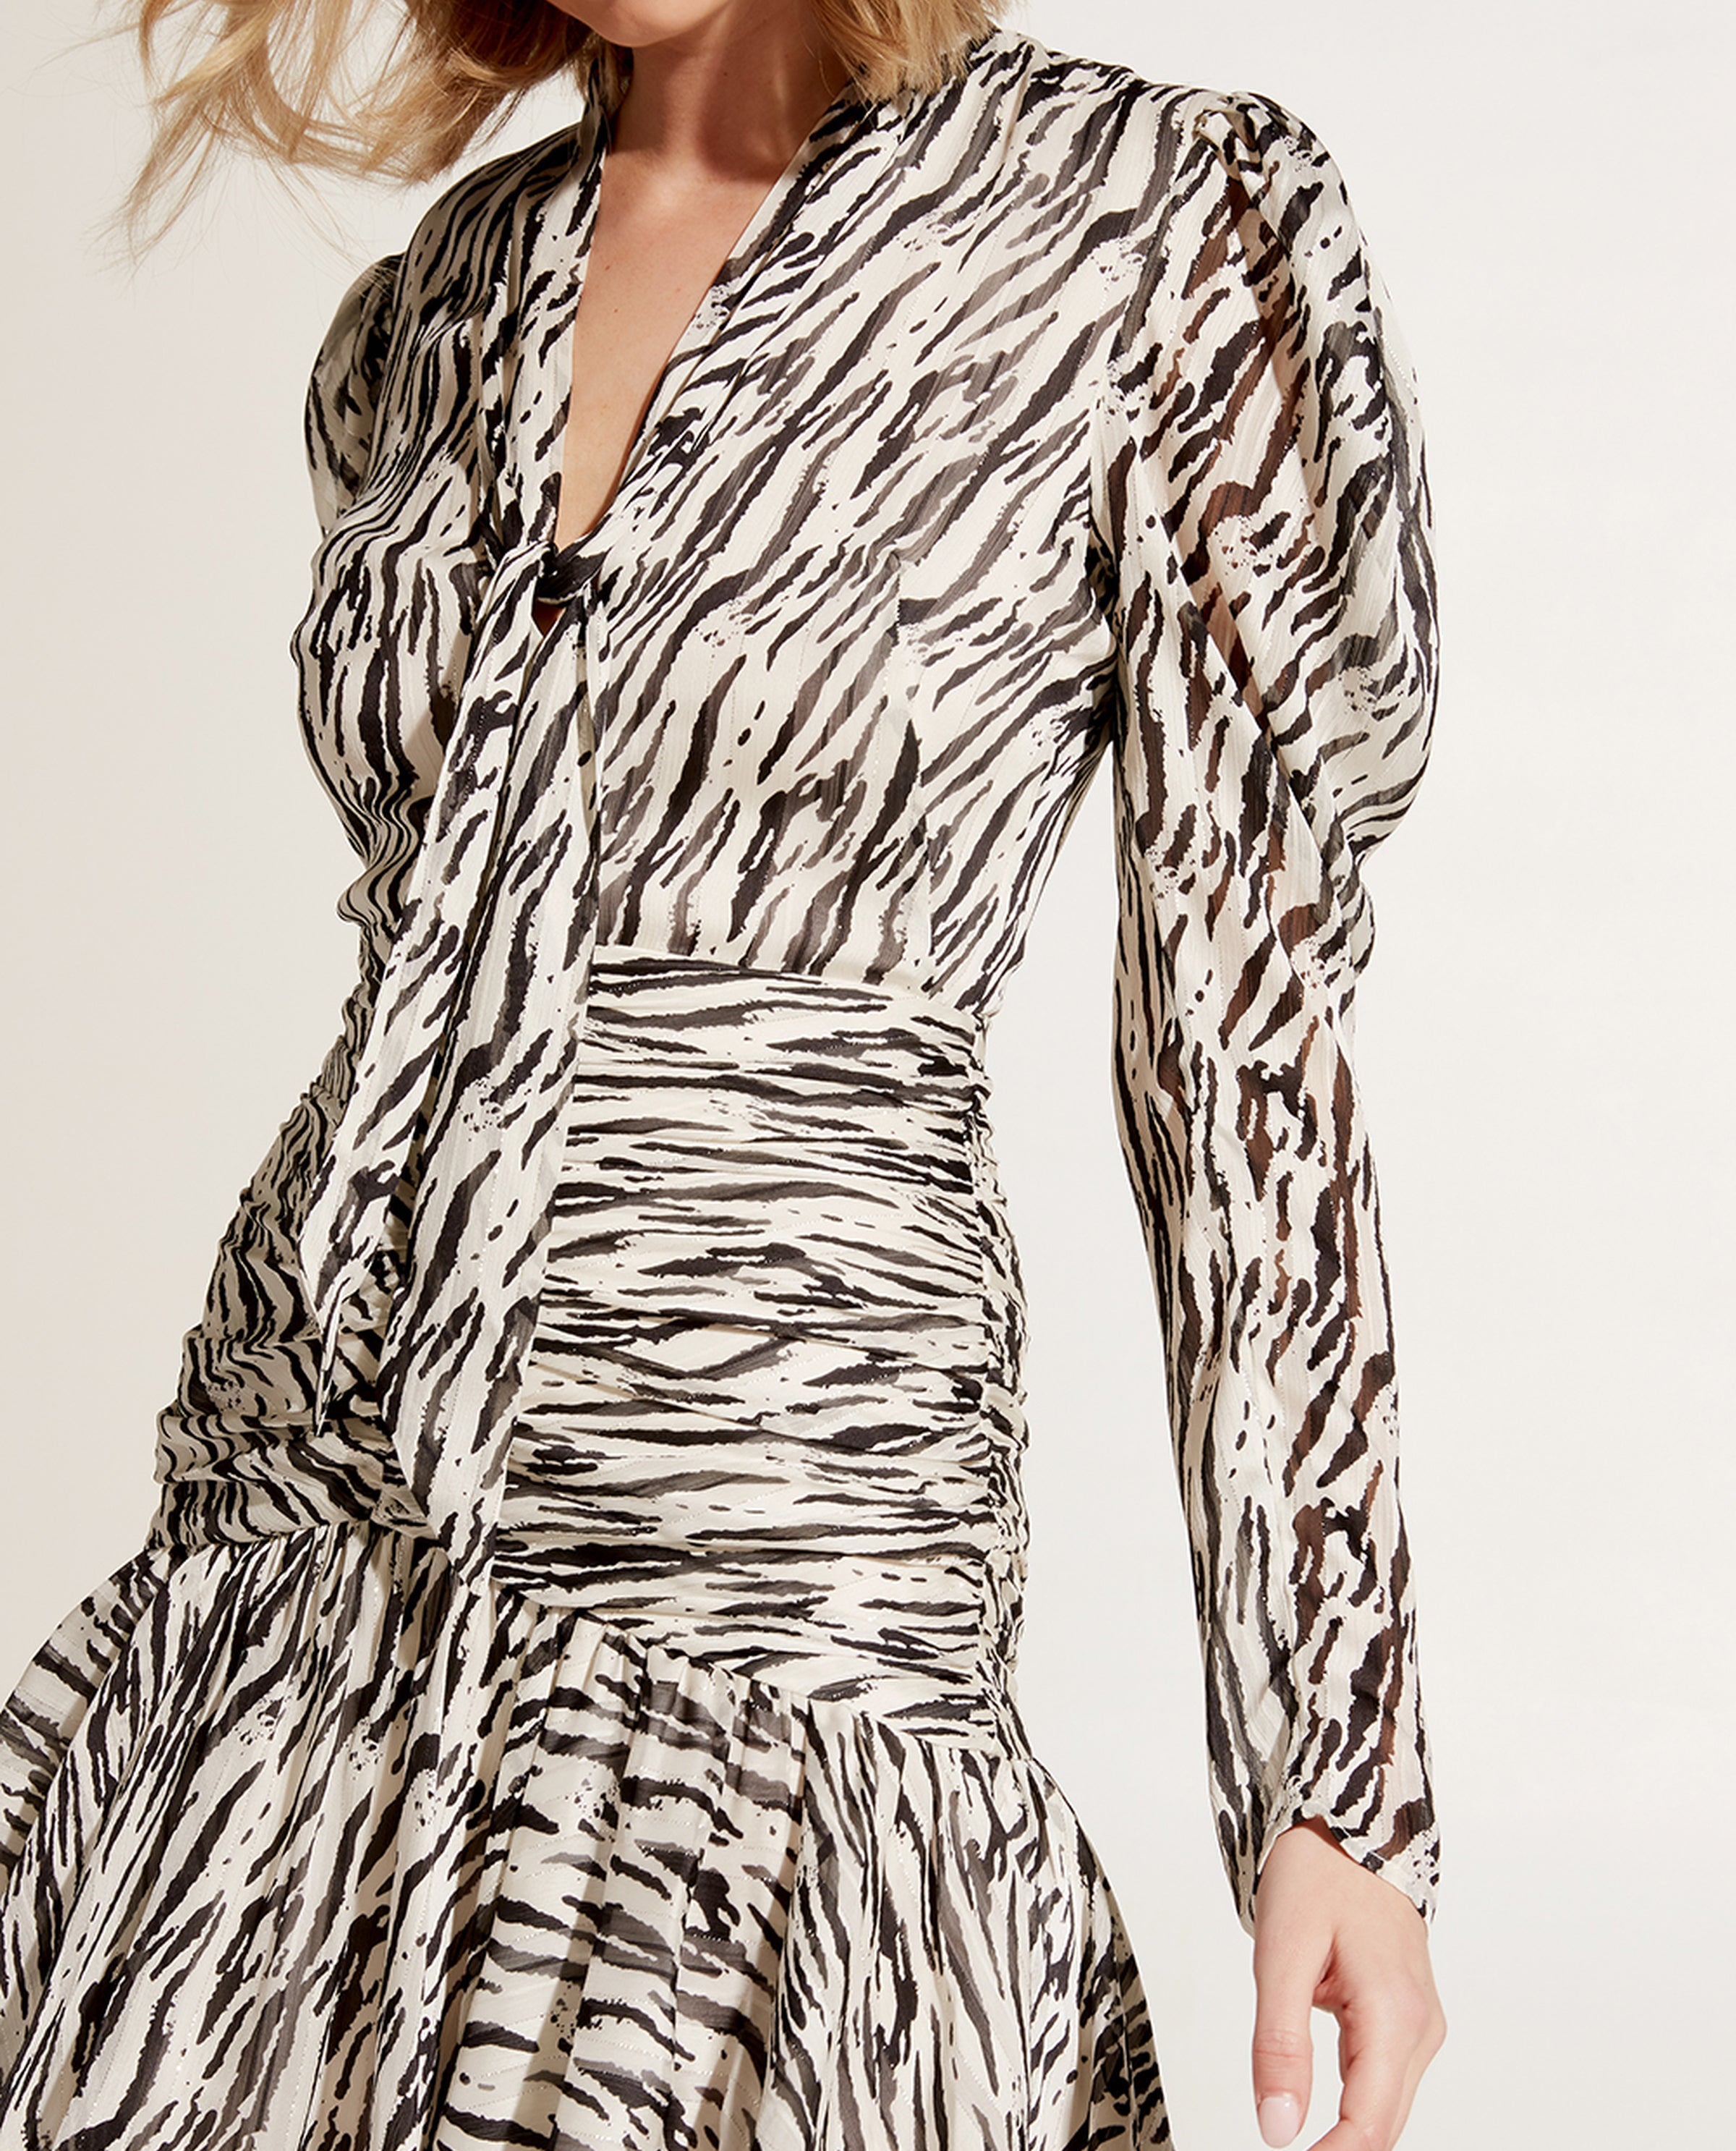 BARDOT ZEBRA MINI DRESS